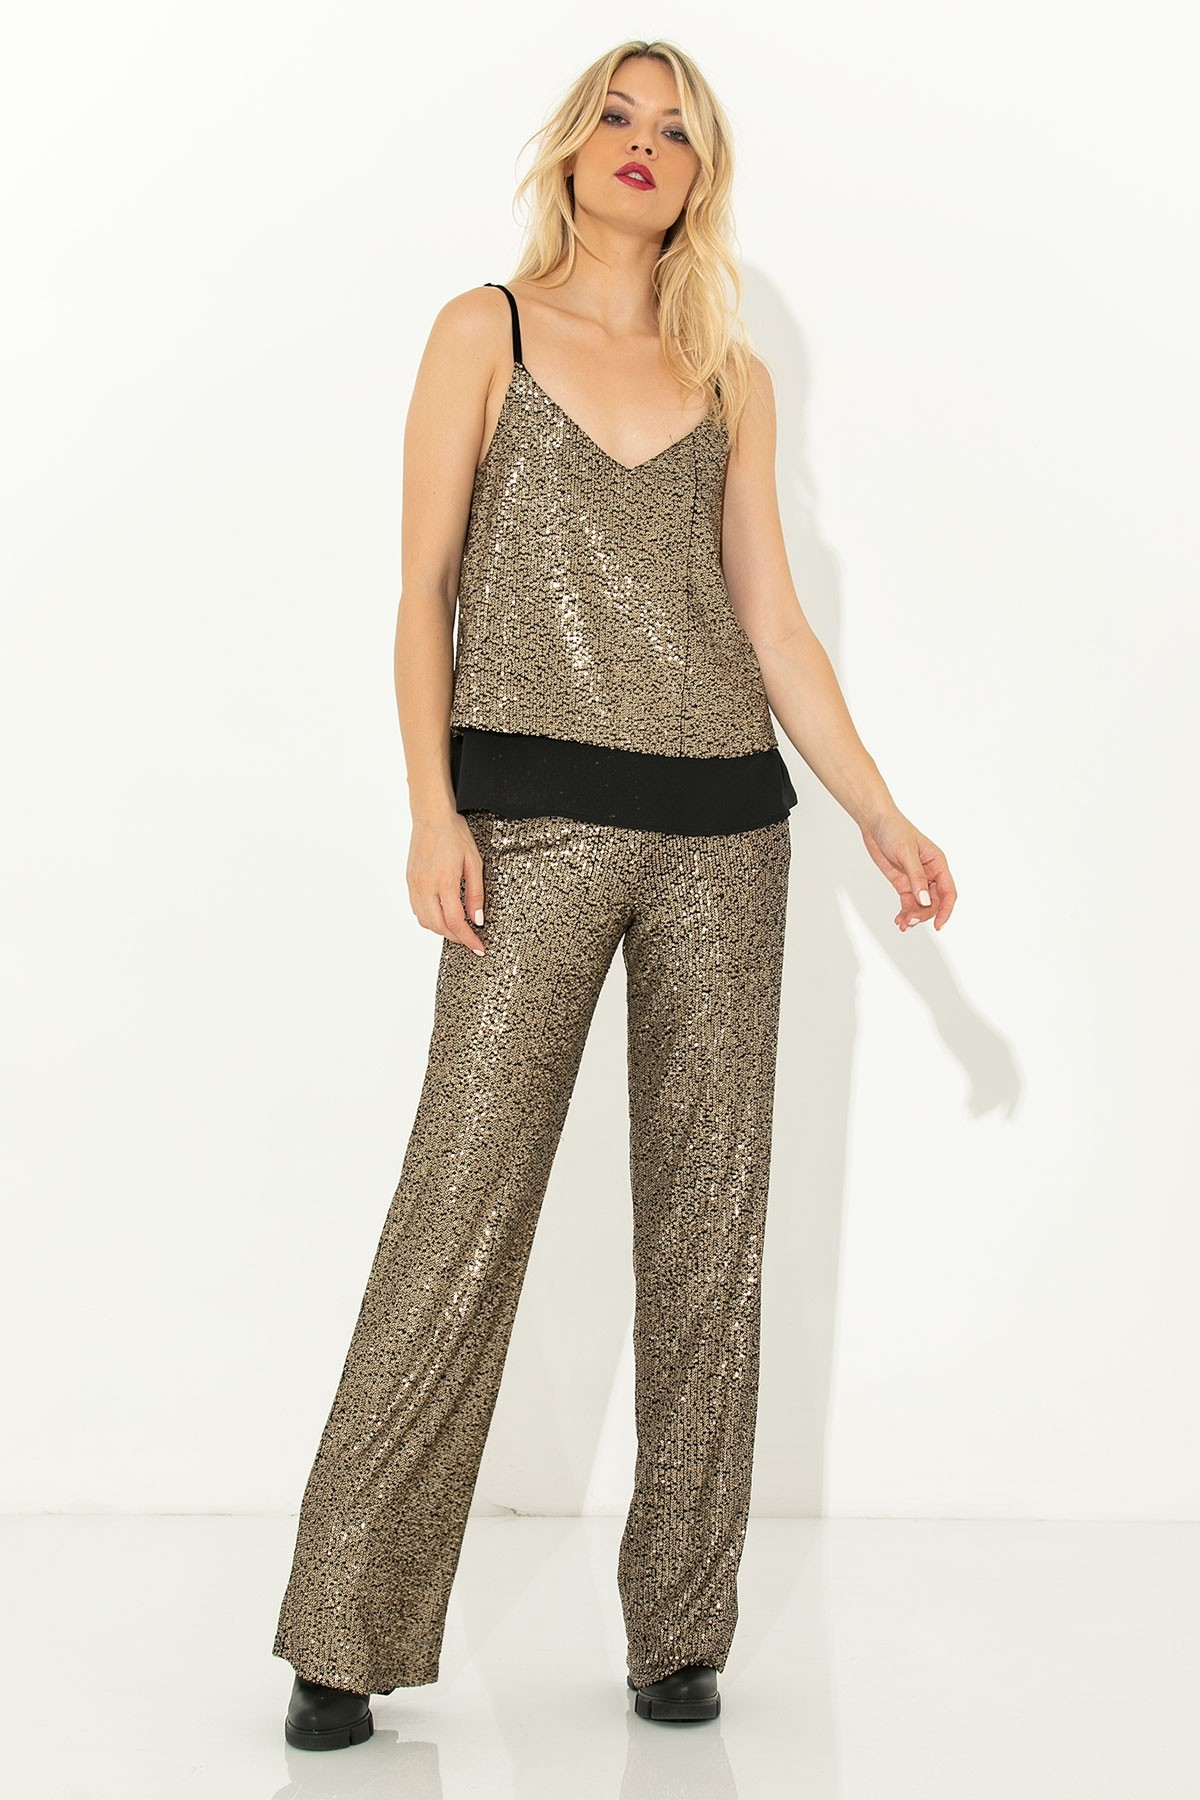 GOLD SEQUIN STRAP TOP